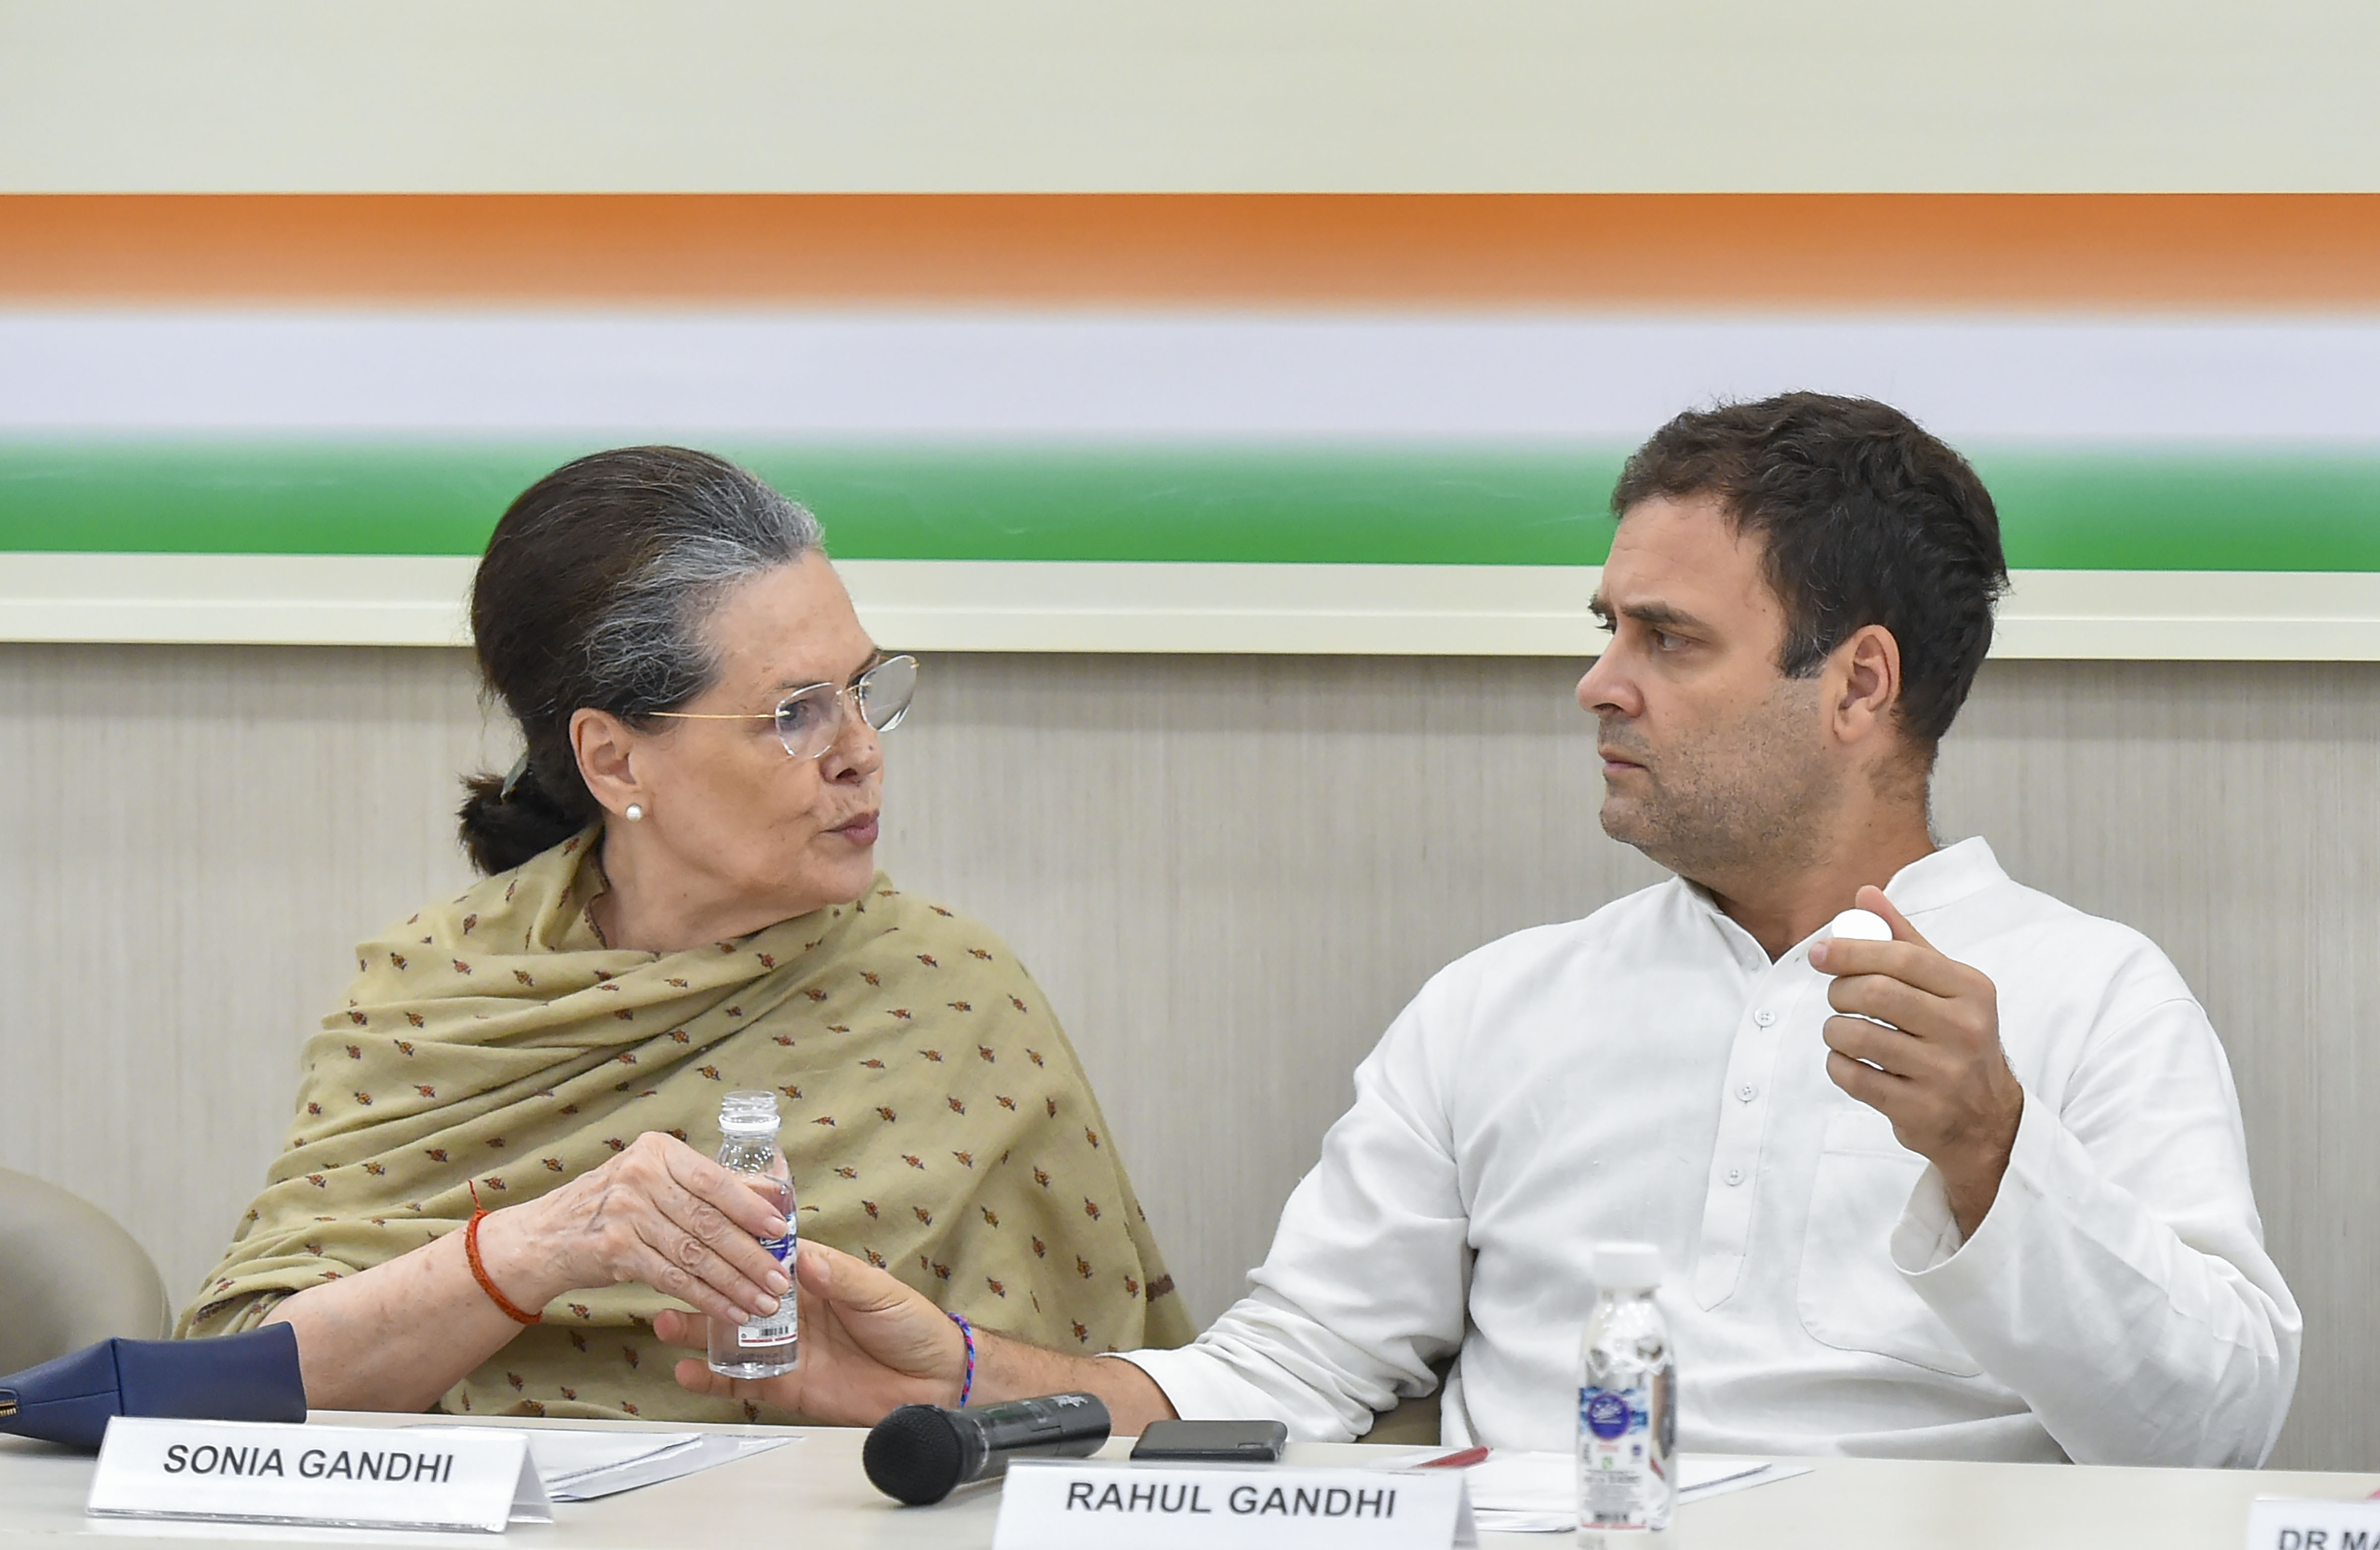 Sonia and Rahul Gandhi during a Congress Working Committee meeting in New Delhi on August 6.